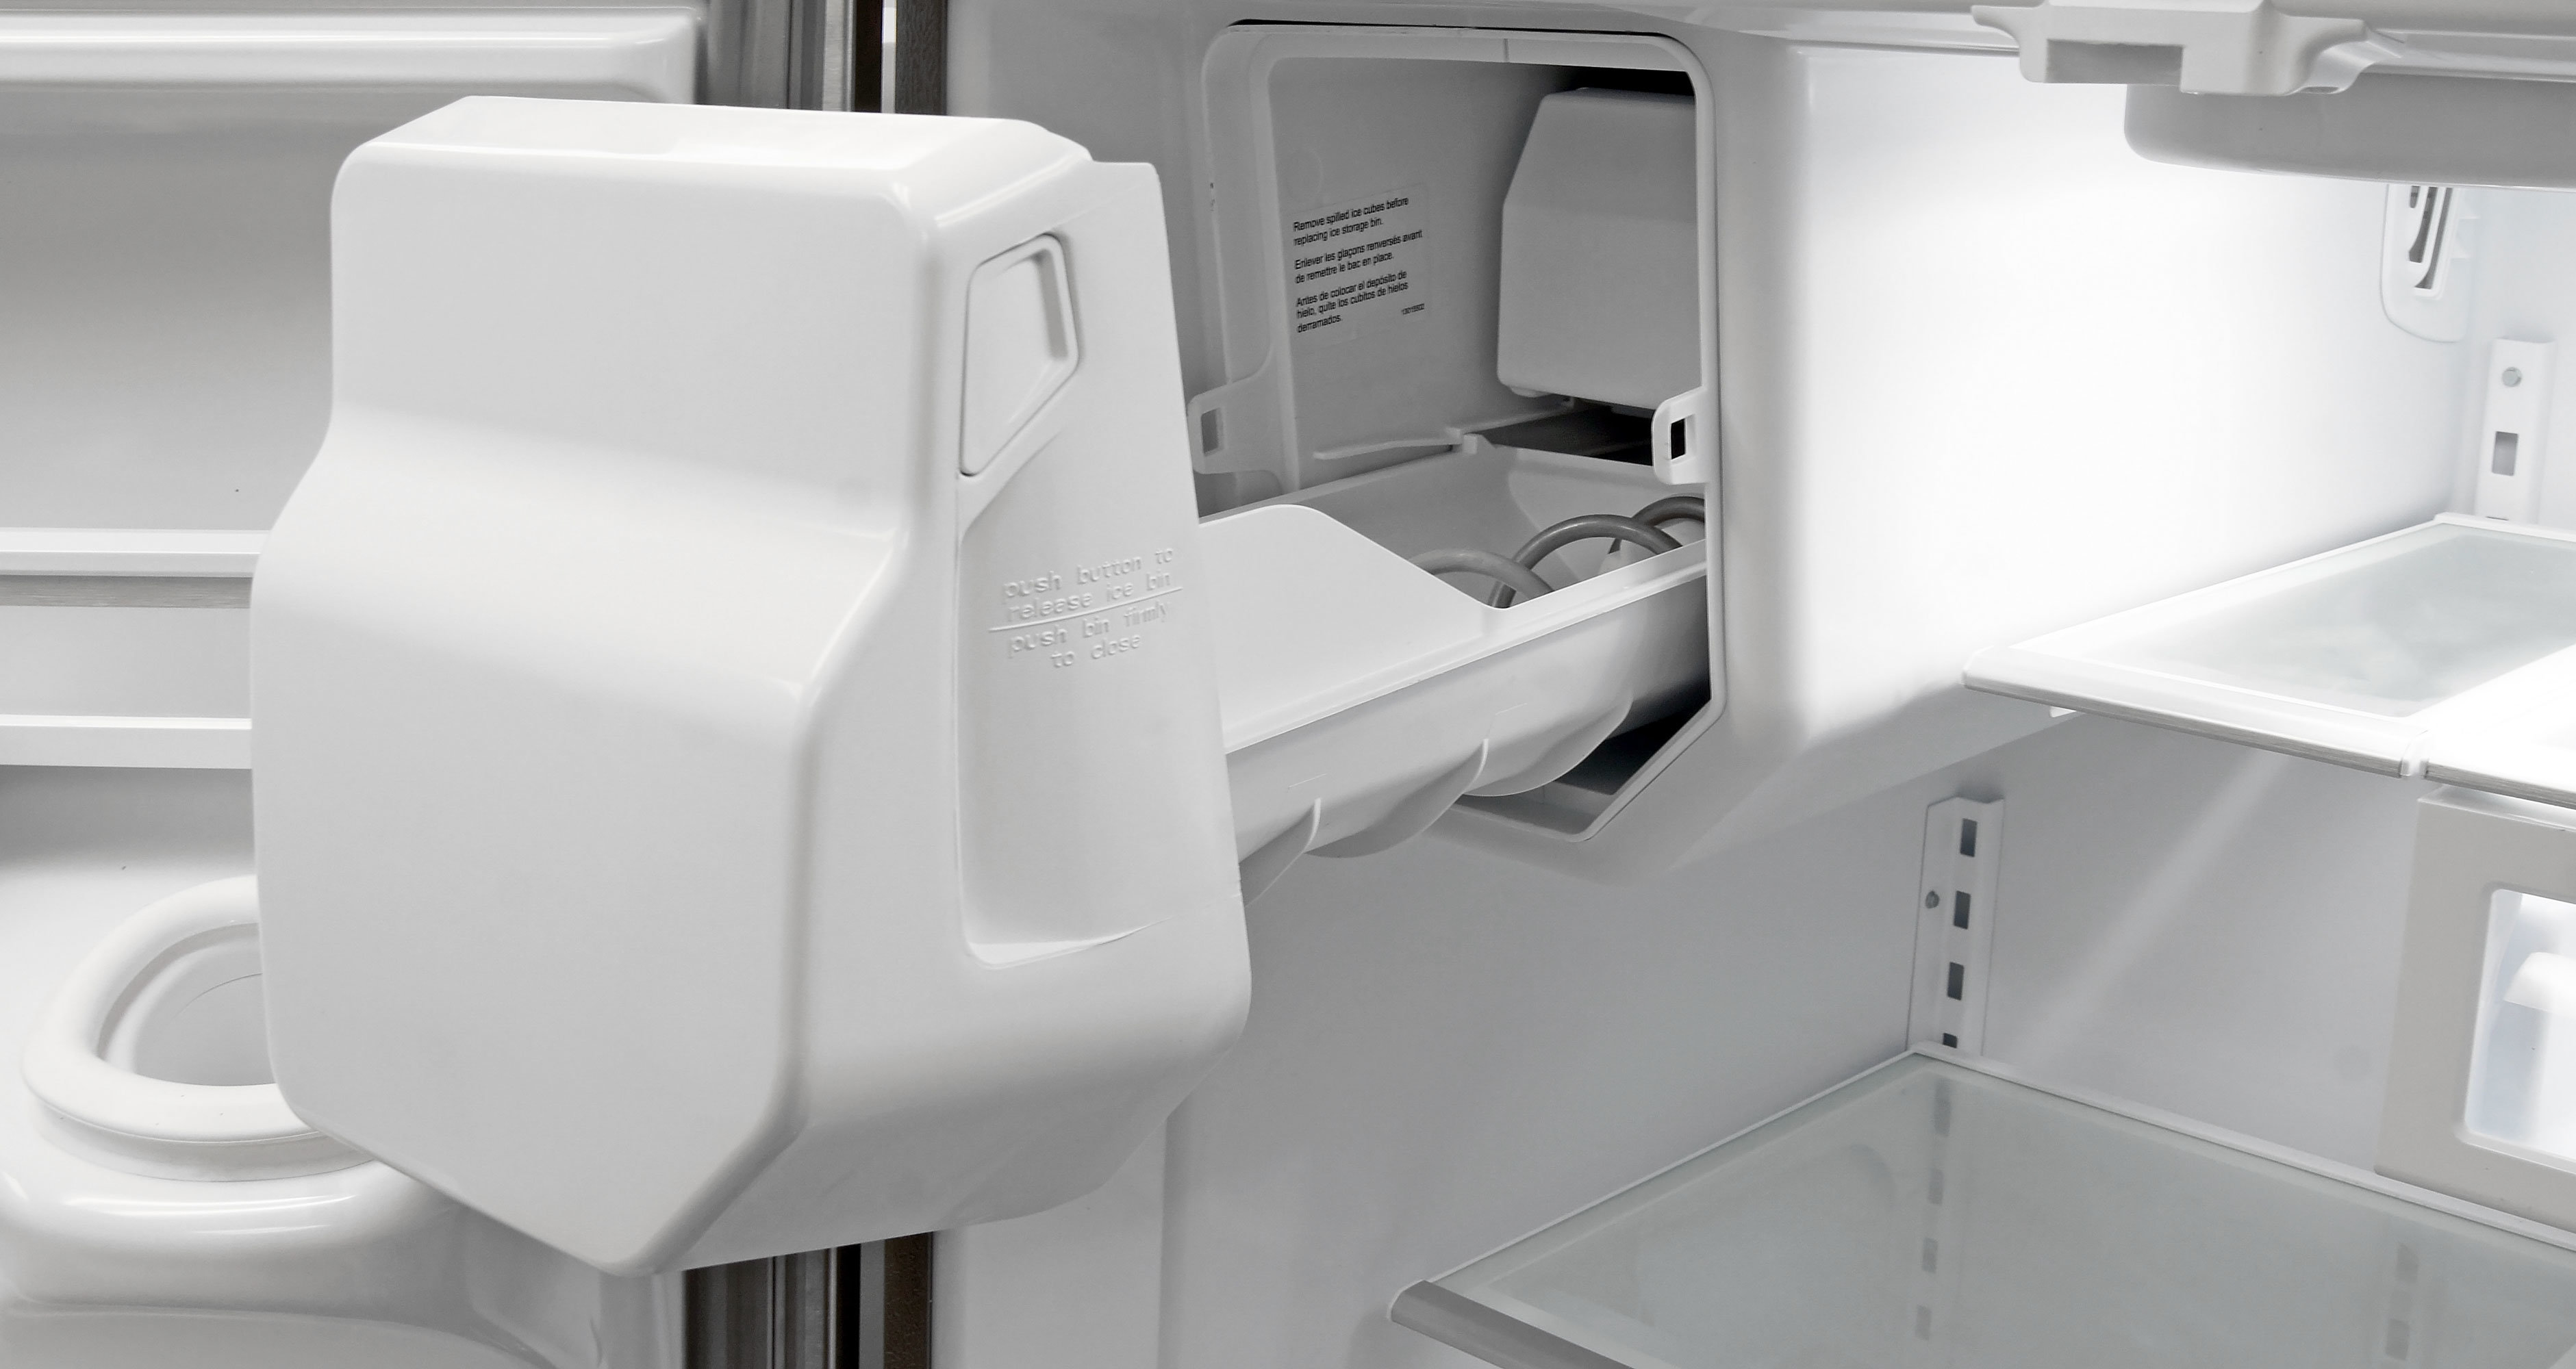 The icemaker is large and unwieldy, a mark of the KitchenAid KFXS25RYMS's affordability.